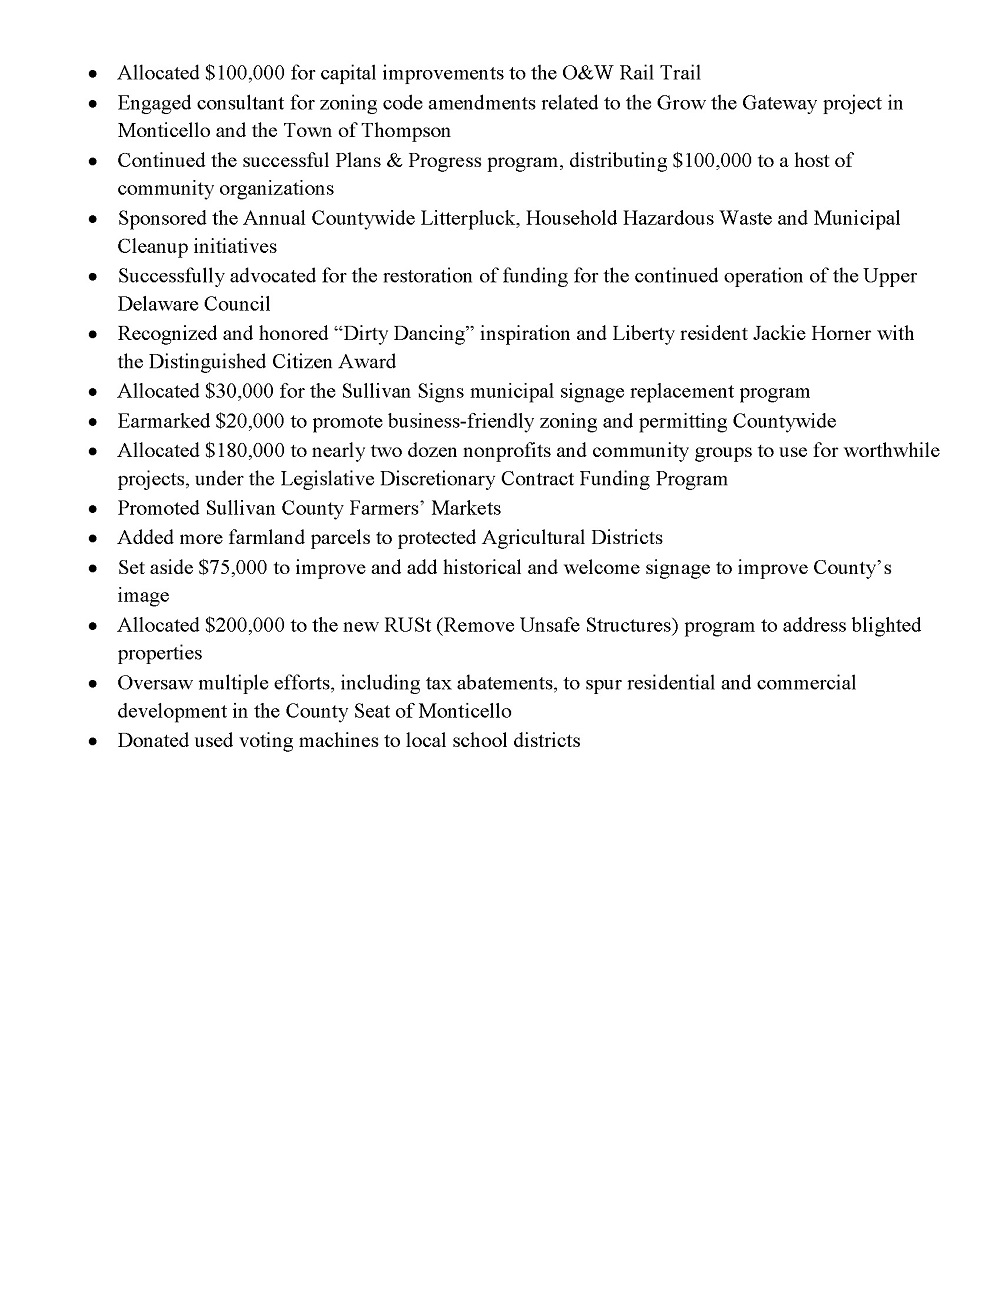 2019 Legislature Accomplishments Page 4